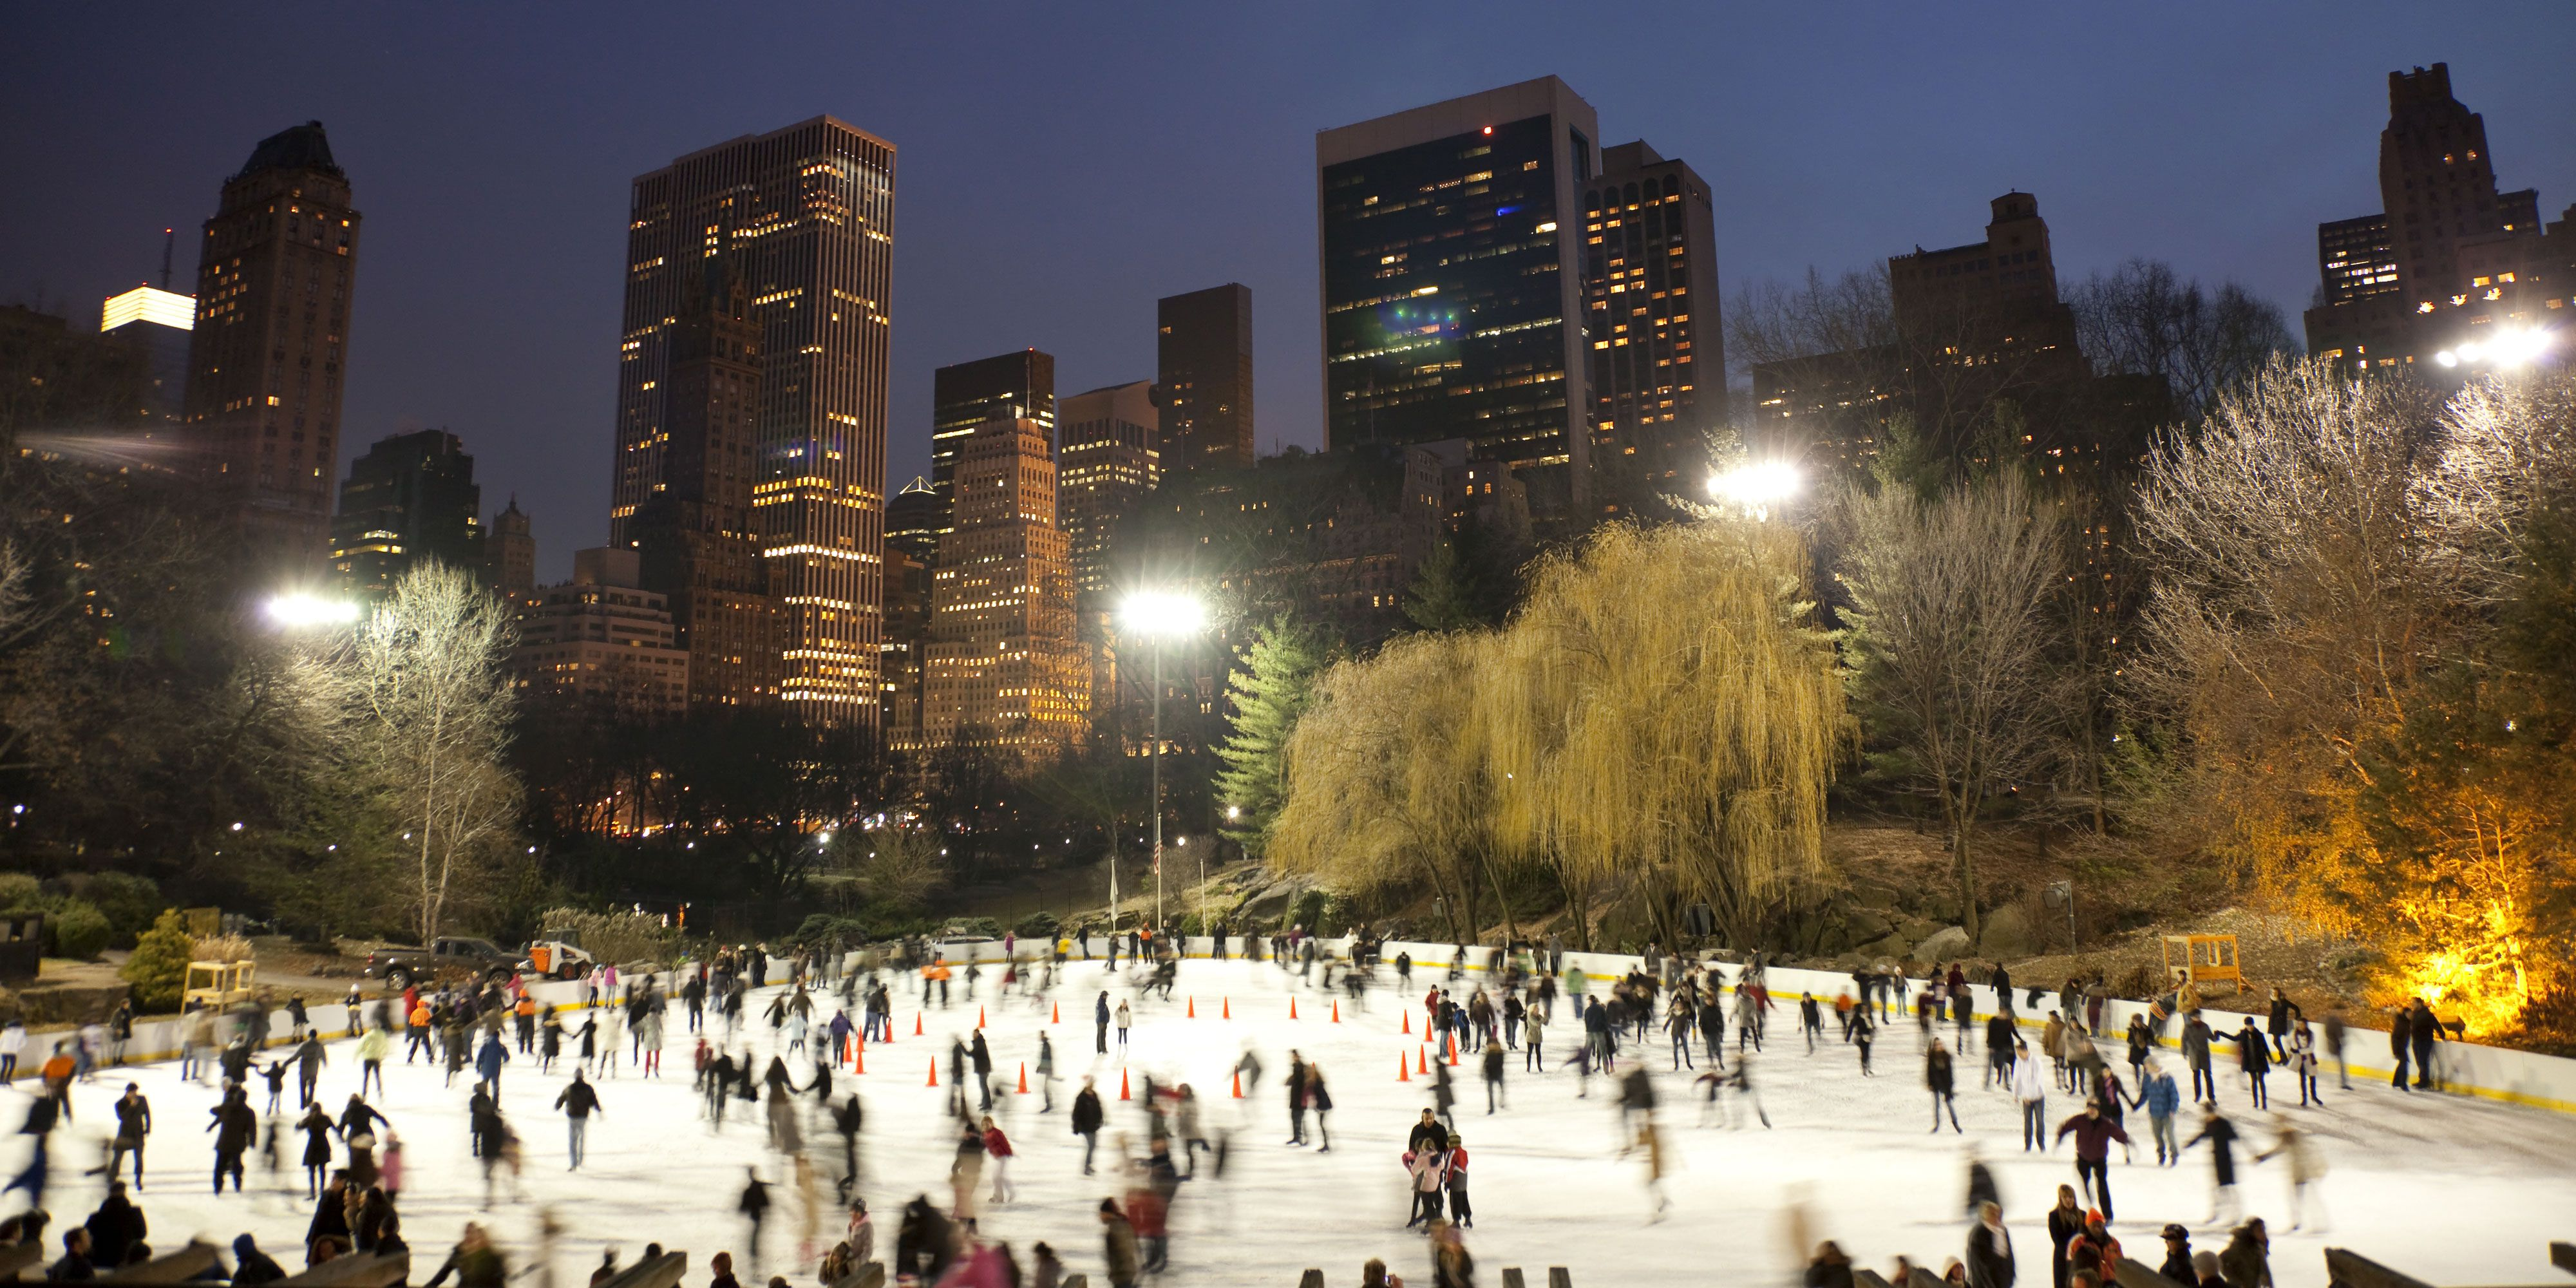 Our Favorite Christmas-y Things to See and Do in New York City